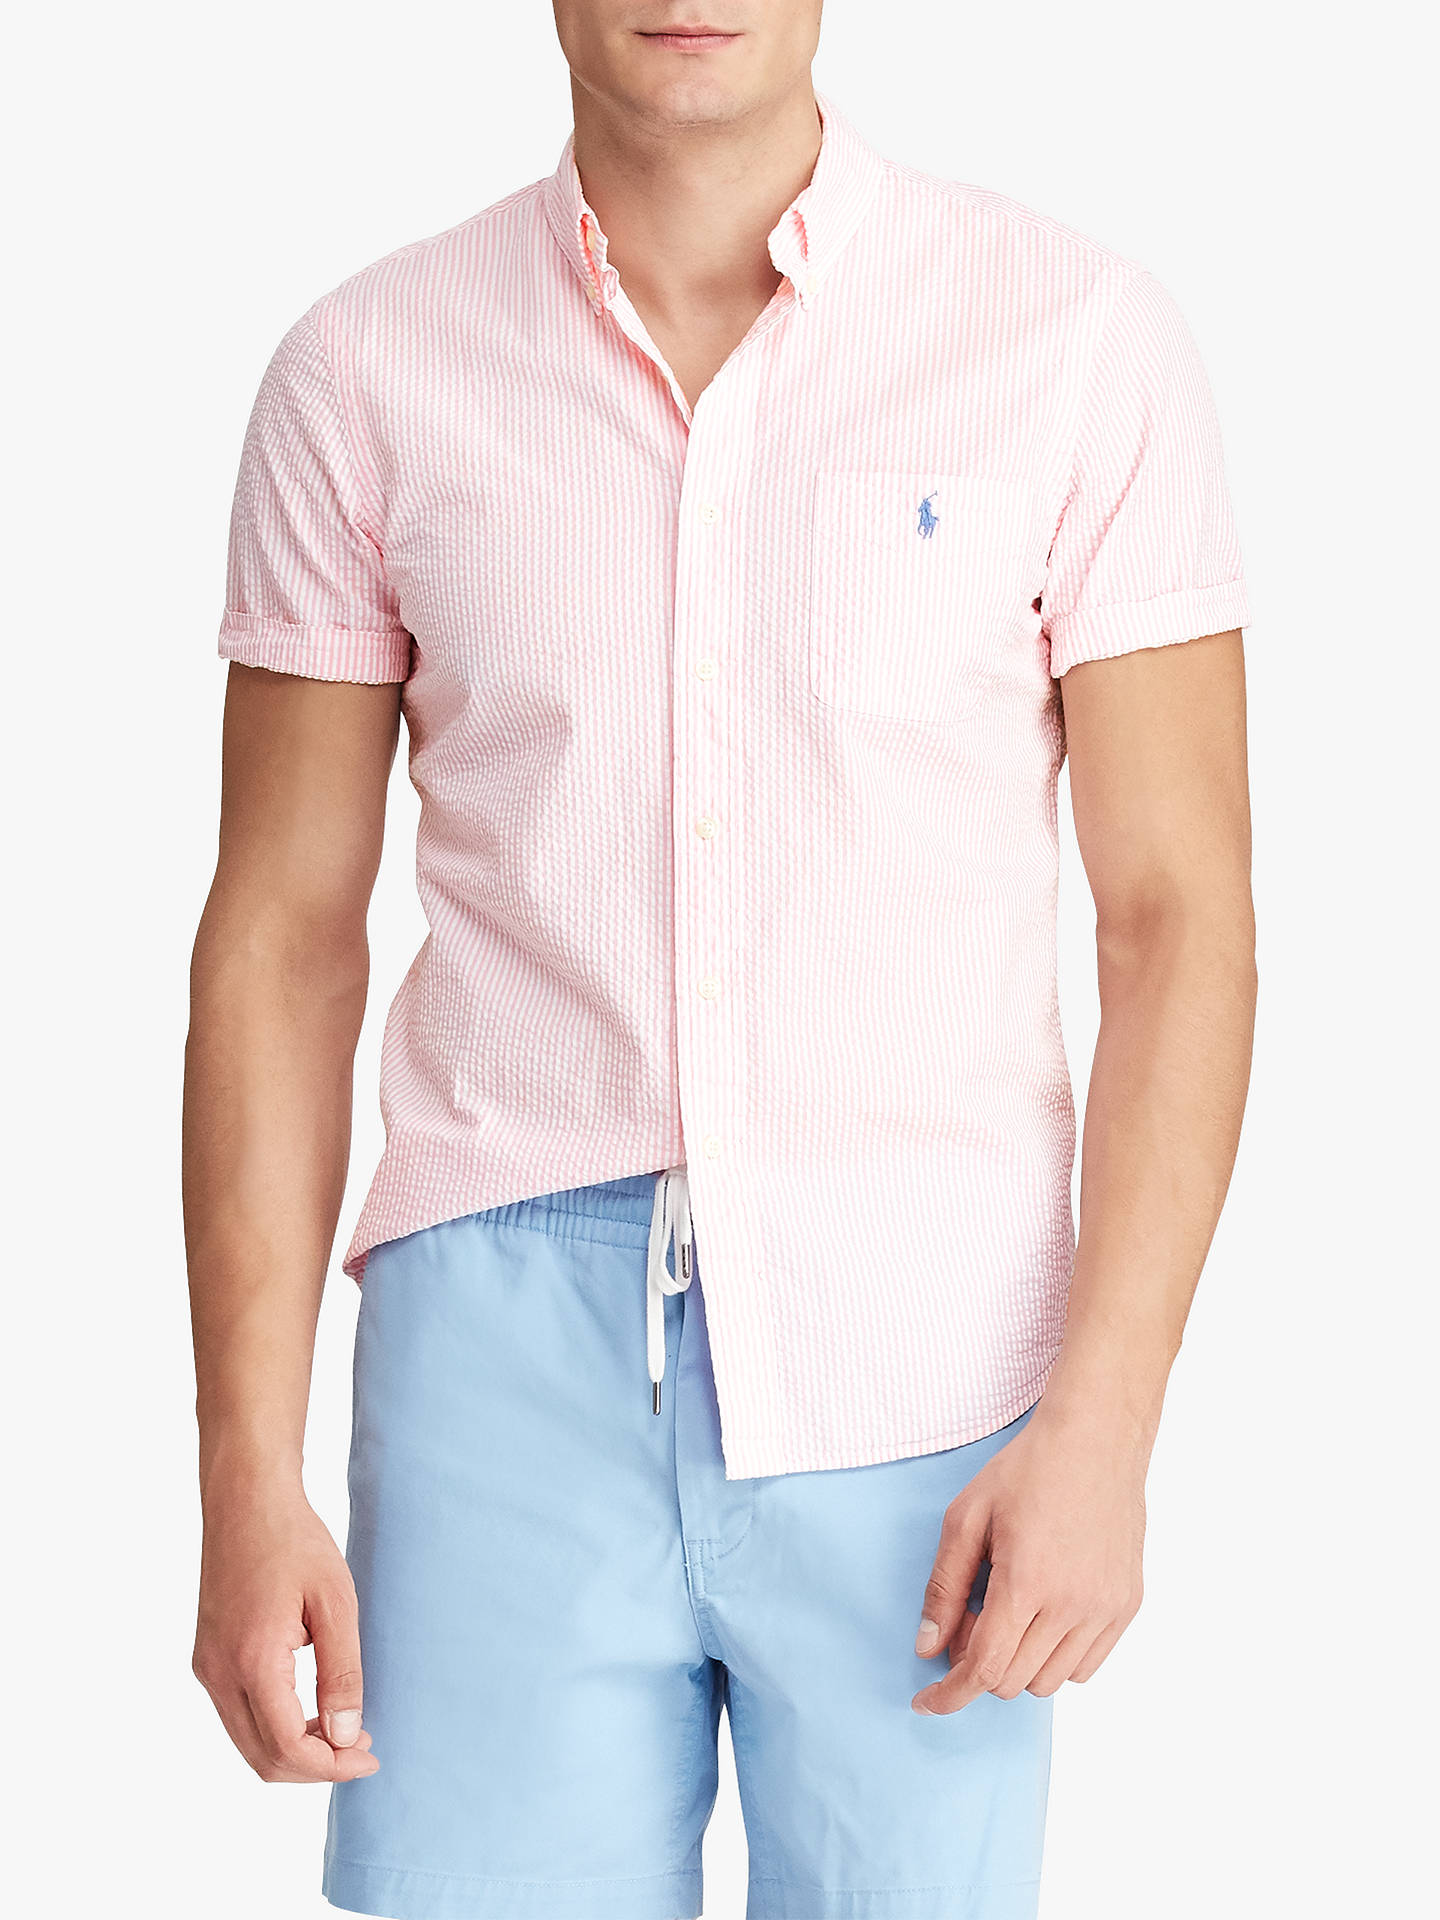 727080bab Buy Polo Ralph Lauren Seersucker Shirt, Pink/White, XL Online at johnlewis.